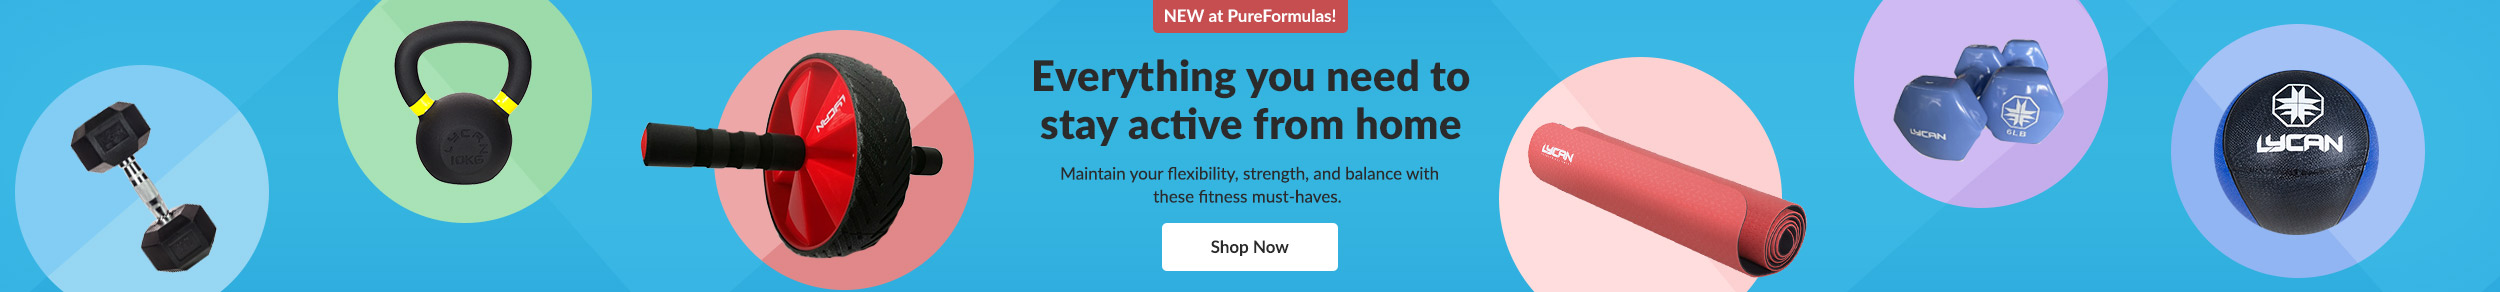 NEW at PureFormulas: Lycan Fitness! Everything you need to stay active from home. Maintain your flexibility, strength and balance with these fitness must-haves. Shop Now